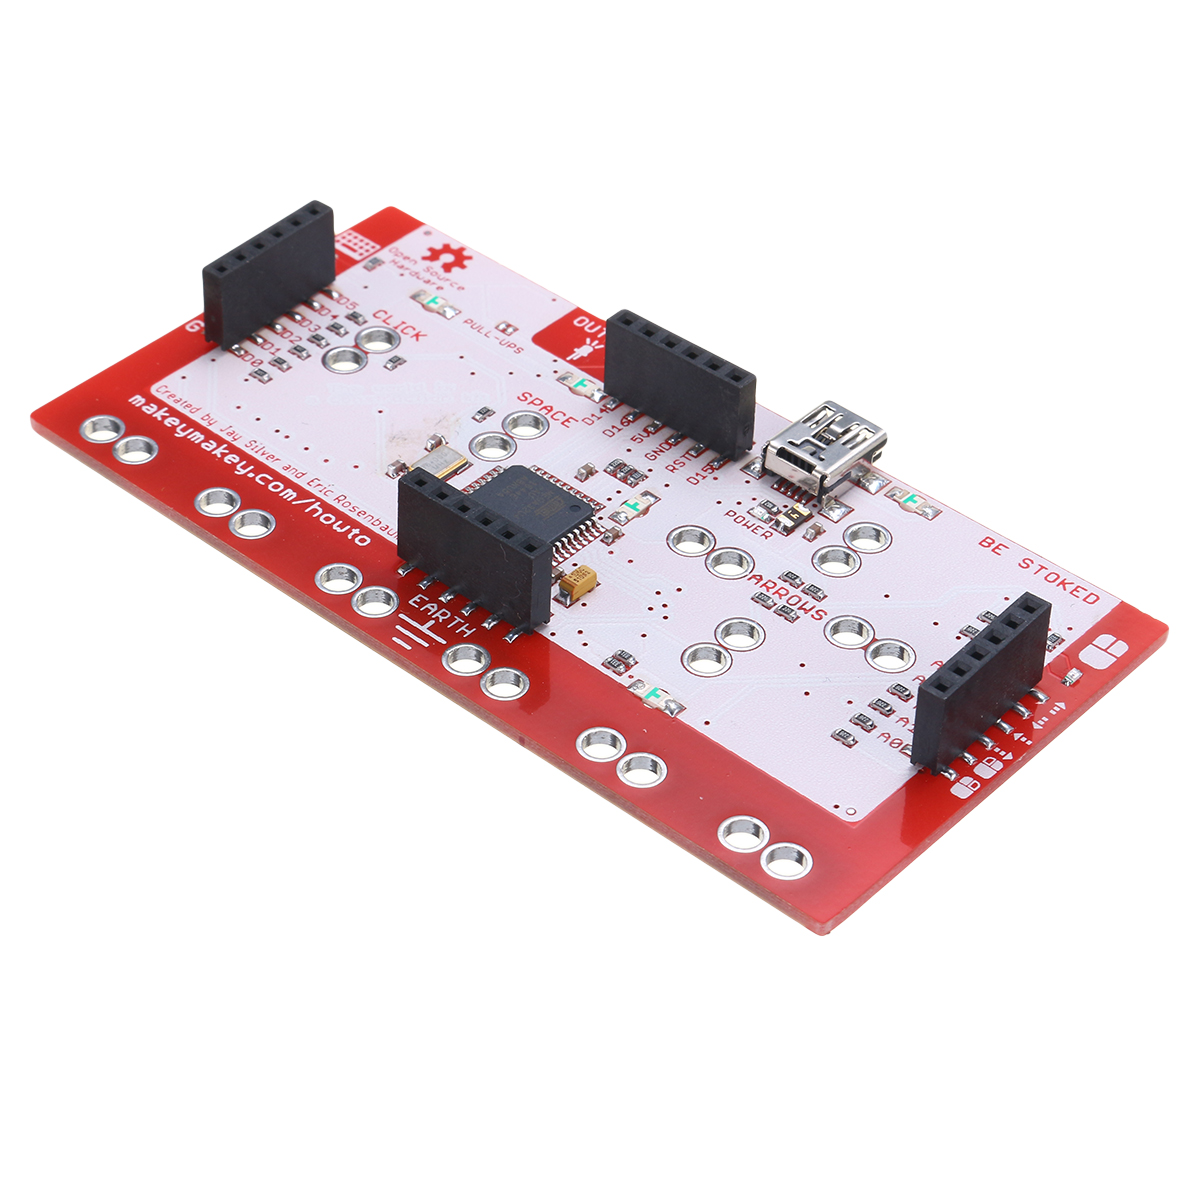 Alligator Clip Jumper Wire Standard Controller Board Kit for Makey Makey Science Toy 26